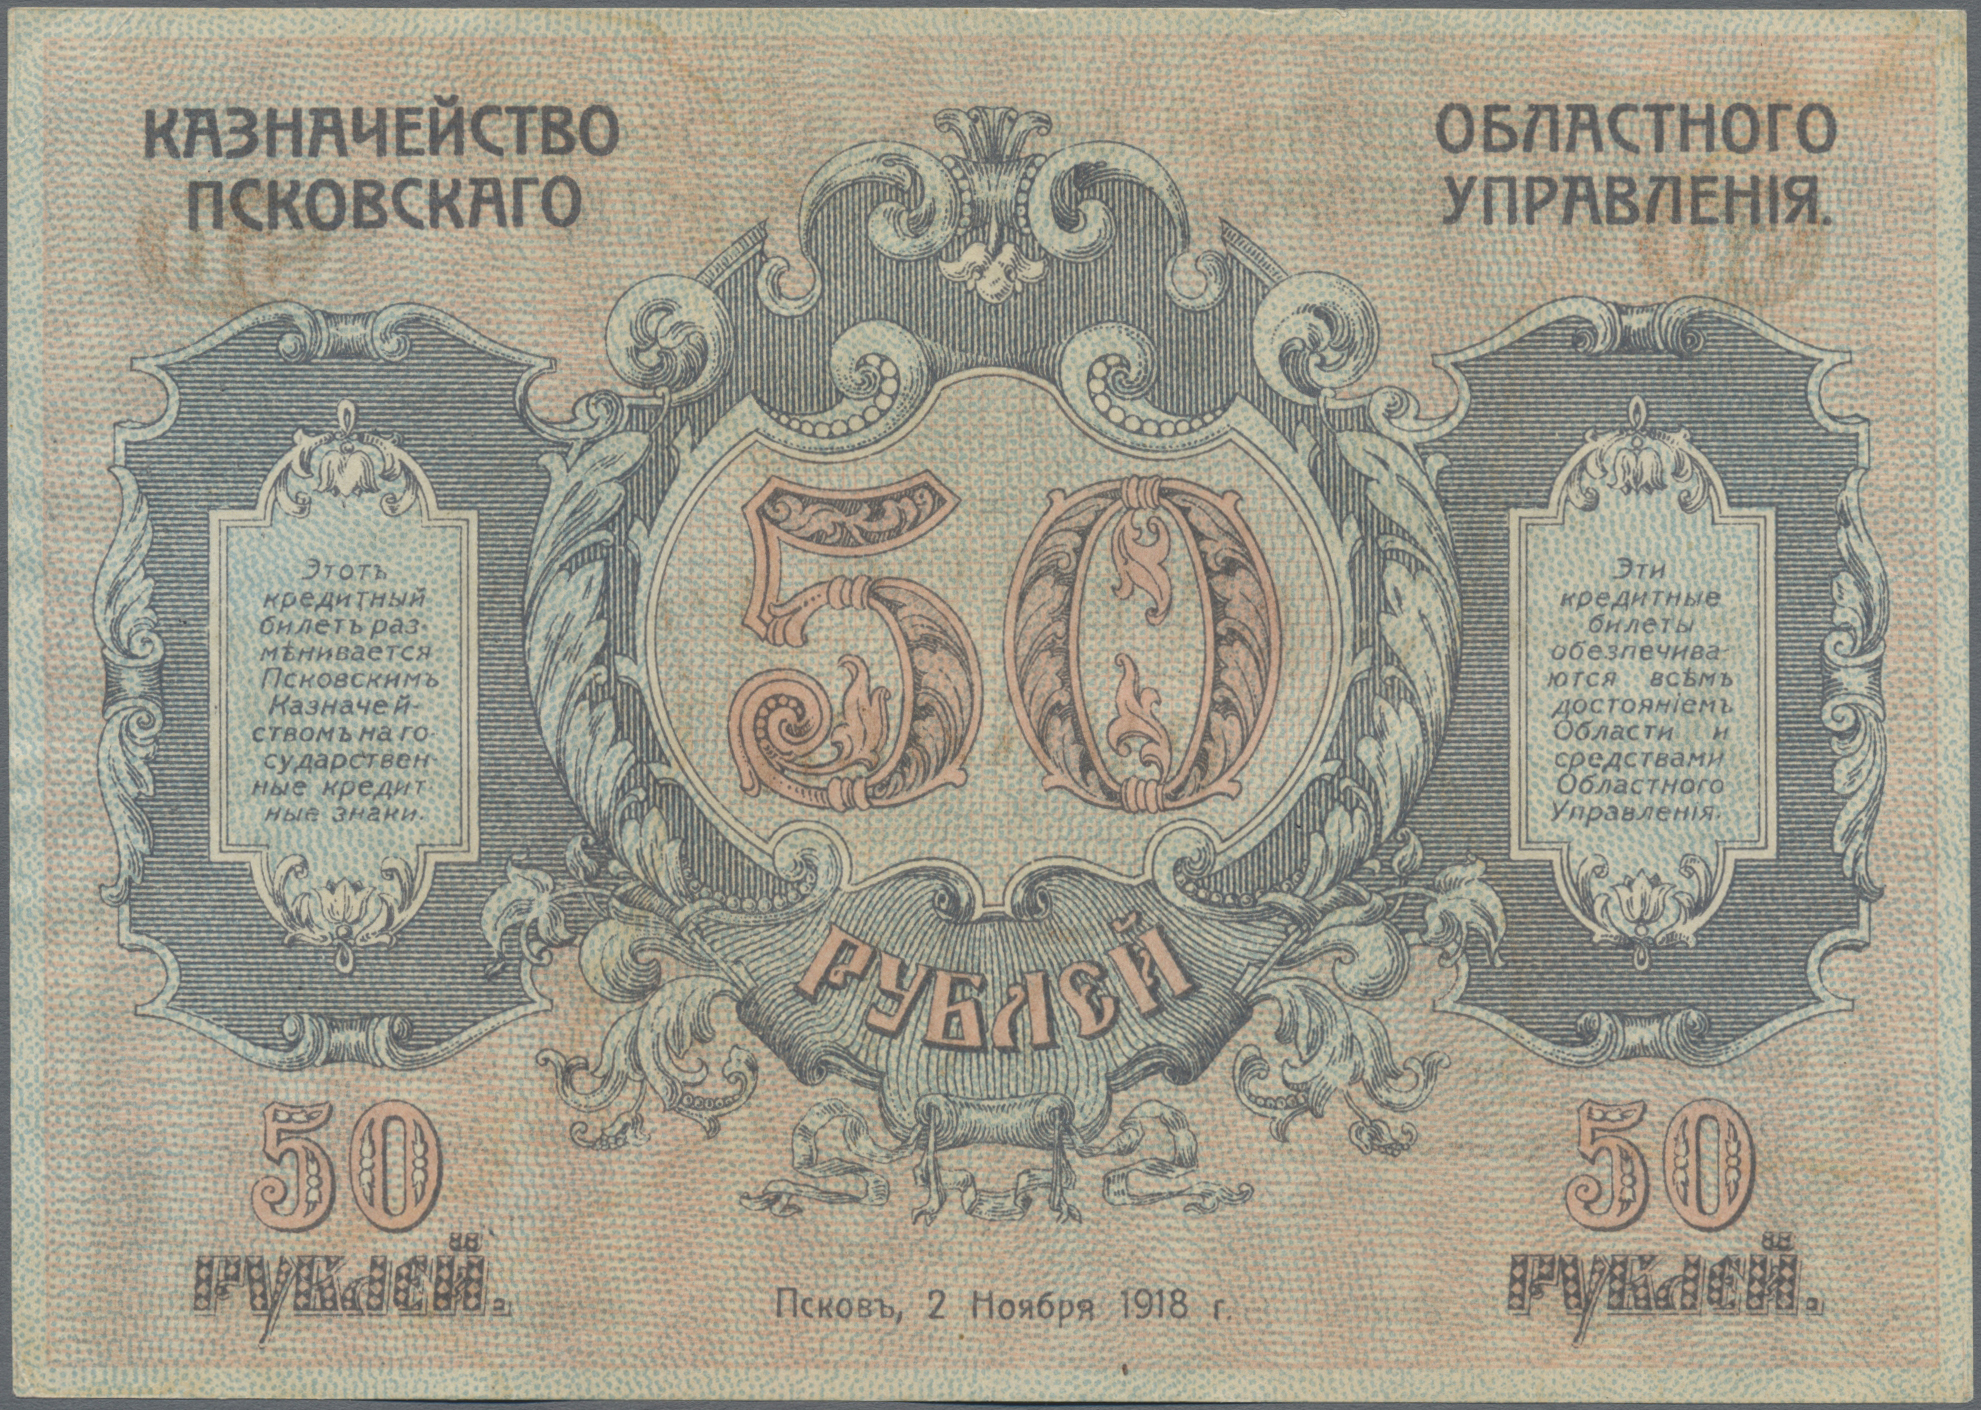 Lot 00663 - Russia / Russland | Banknoten  -  Auktionshaus Christoph Gärtner GmbH & Co. KG Sale #48 The Banknotes